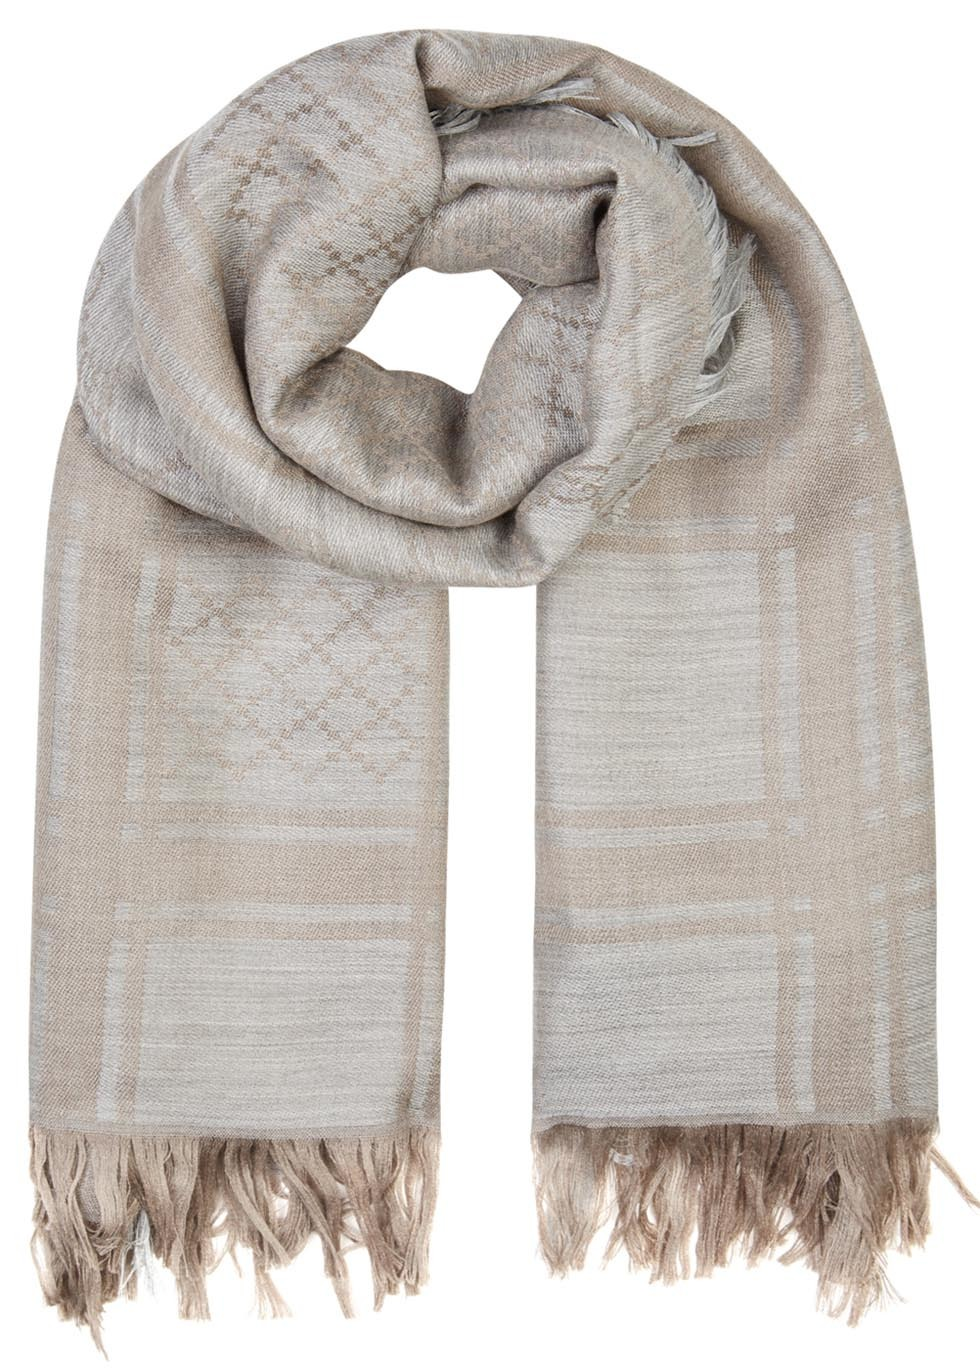 Survie Taupe Monogrammed Wool Blend Scarf - predominant colour: silver; secondary colour: gold; occasions: casual; type of pattern: standard; style: regular; size: standard; material: fabric; embellishment: fringing; pattern: patterned/print; season: s/s 2016; wardrobe: highlight